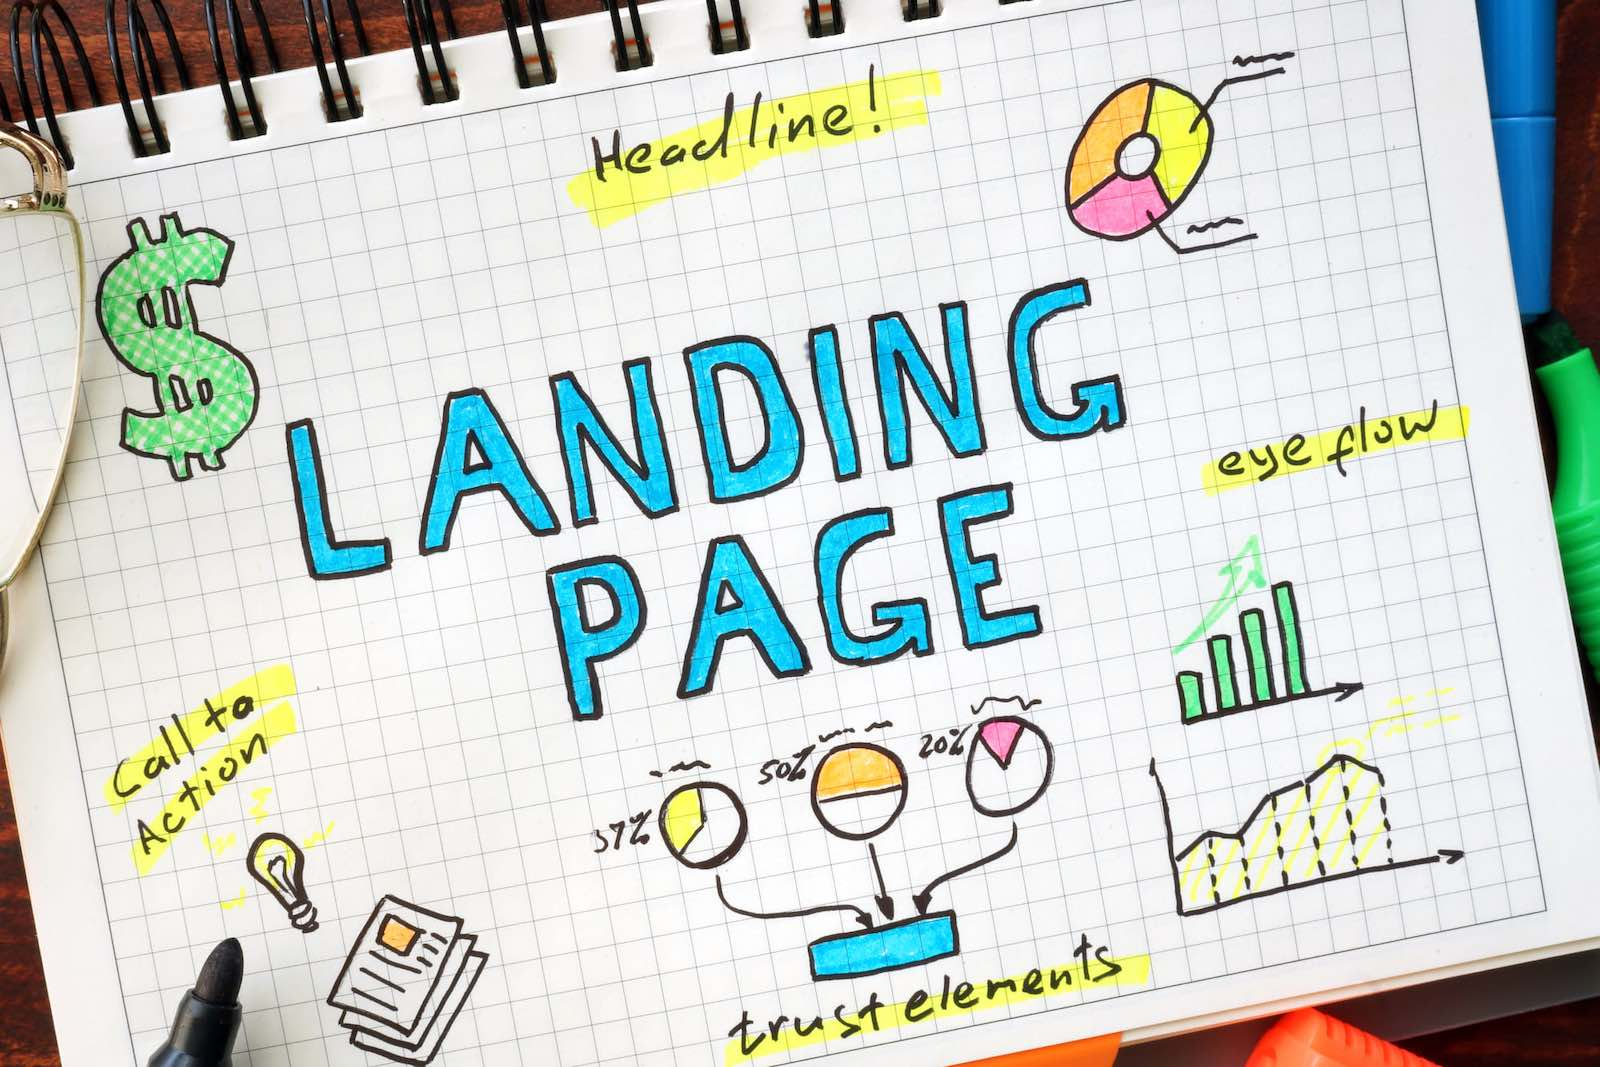 Landing page, cosa è e perchè è fondamentale nel marketing